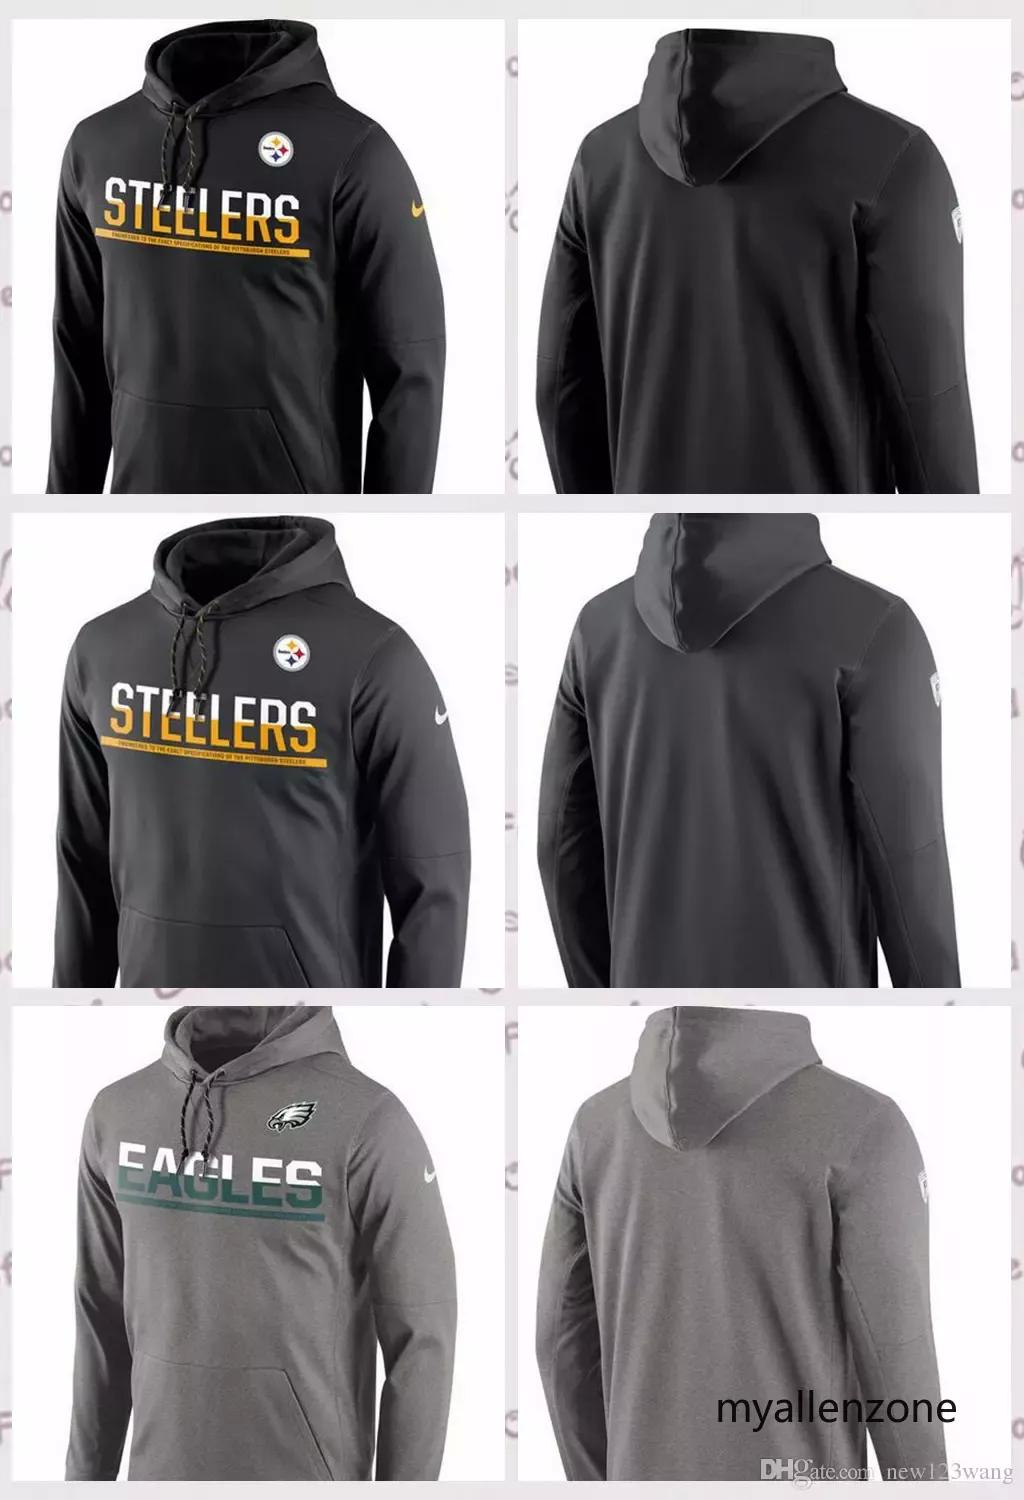 Pittsburgh Steelers Philadelphia Eagles Sideline Circuit Pullover  Performance Hoodie Black Anthracite Gray Online with  68.37 Piece on  Myallenzone8 s Store ... 033542c88